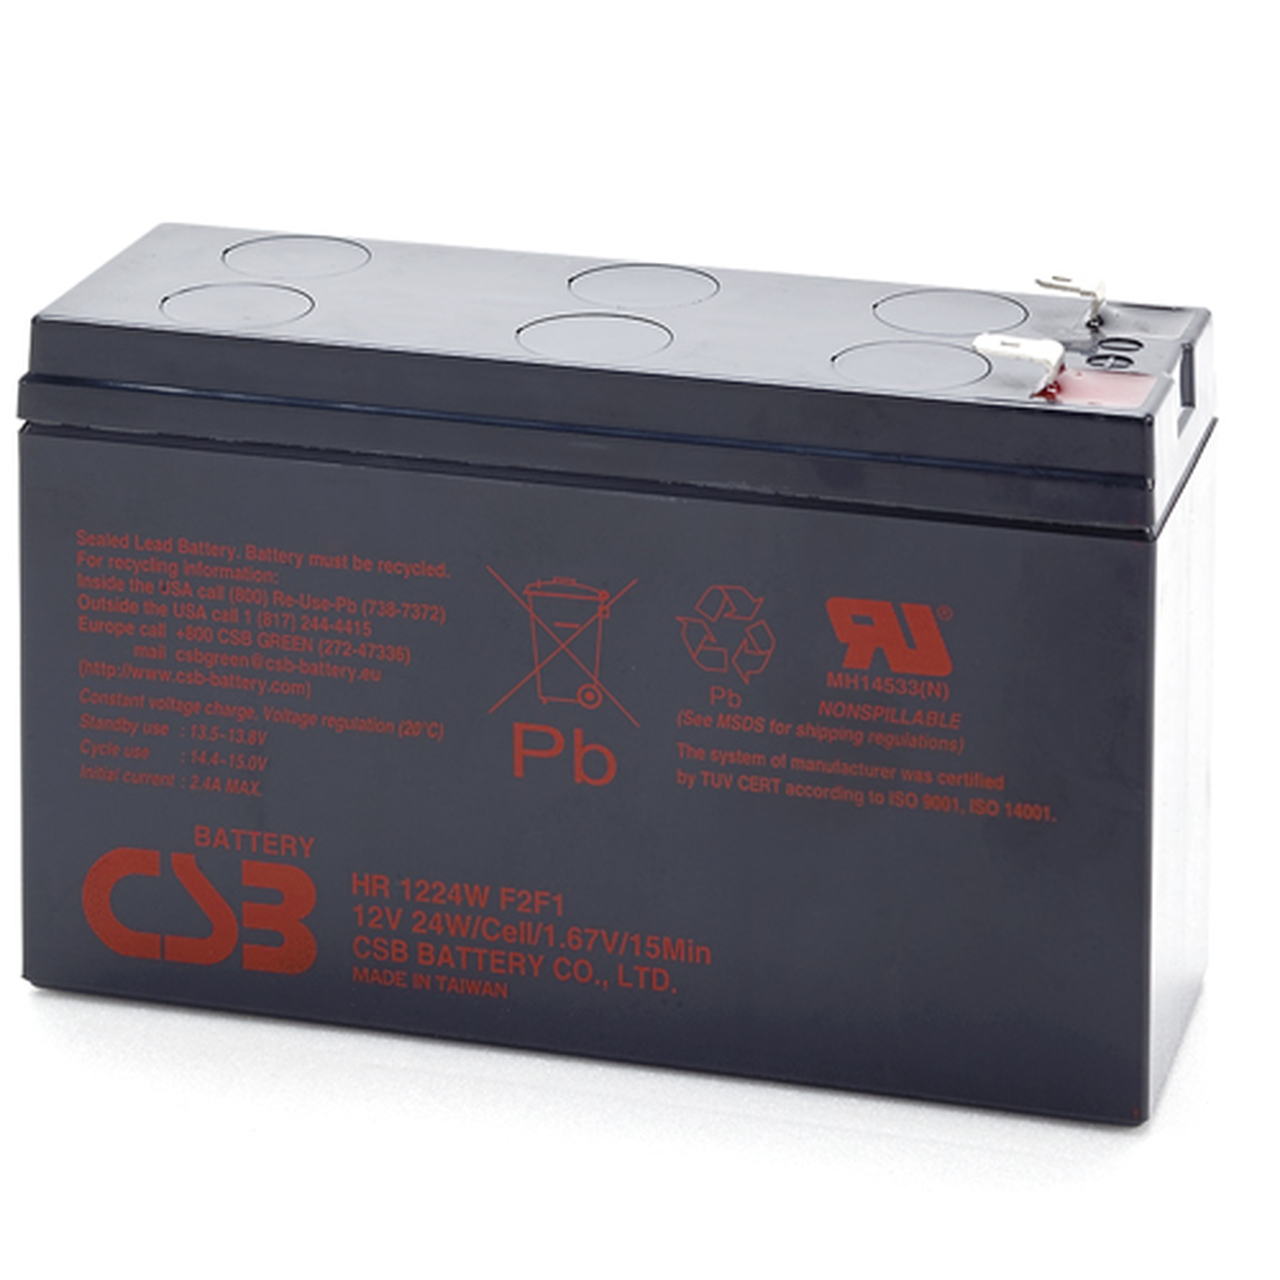 Battery Outfitters HR1224W 12V 24 Watt High Rate AGM Battery